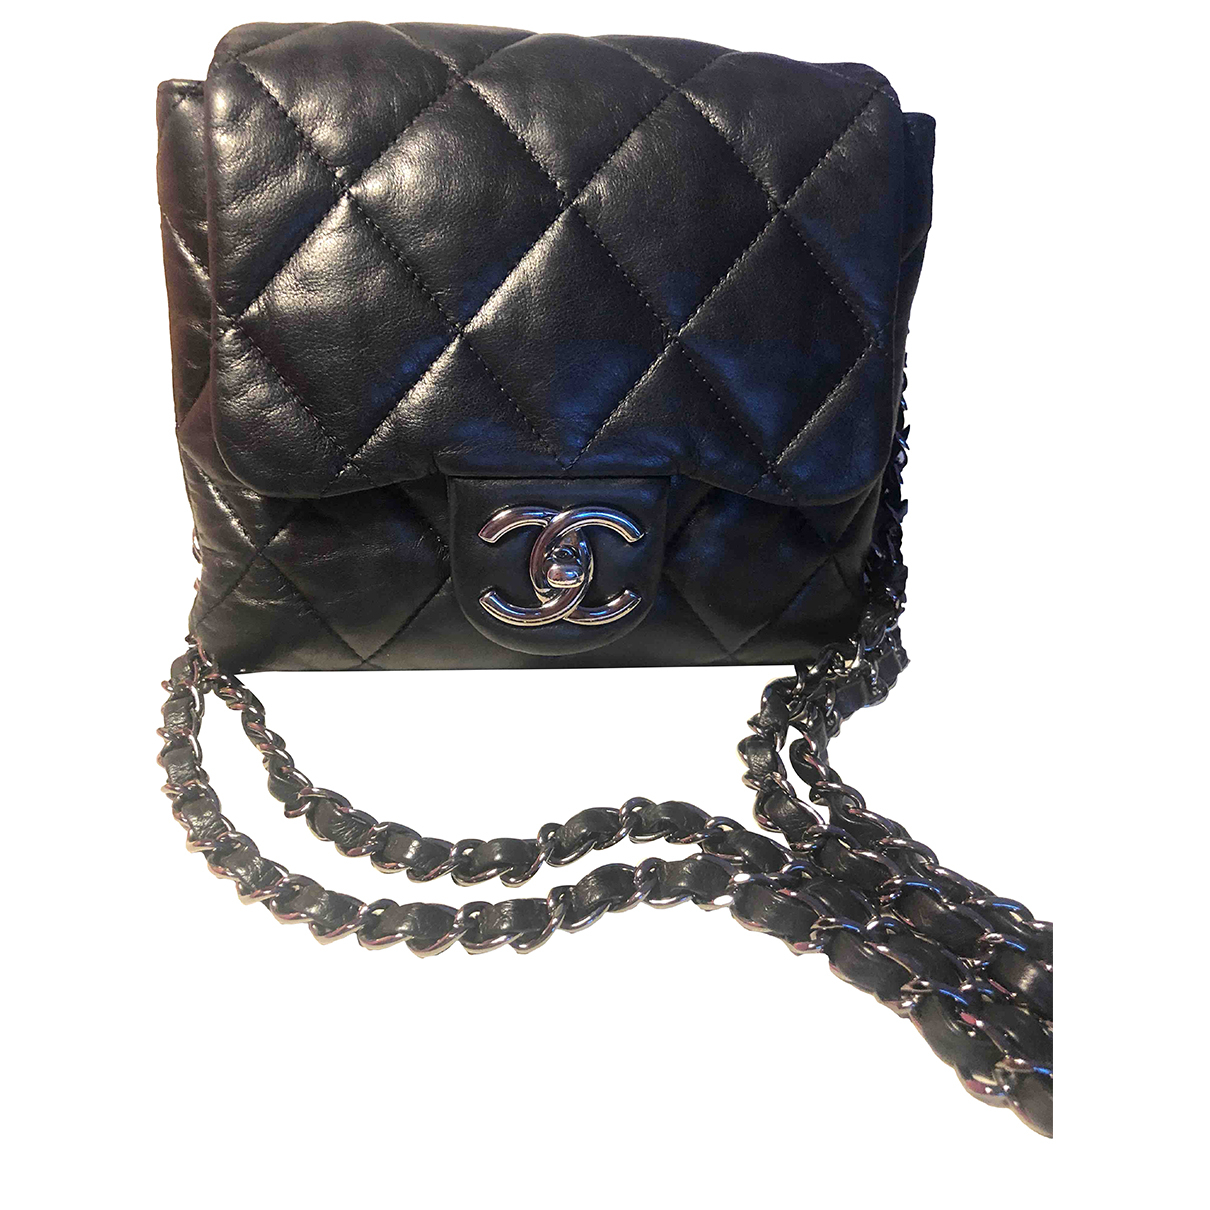 Chanel 2.55 Black Leather handbag for Women N